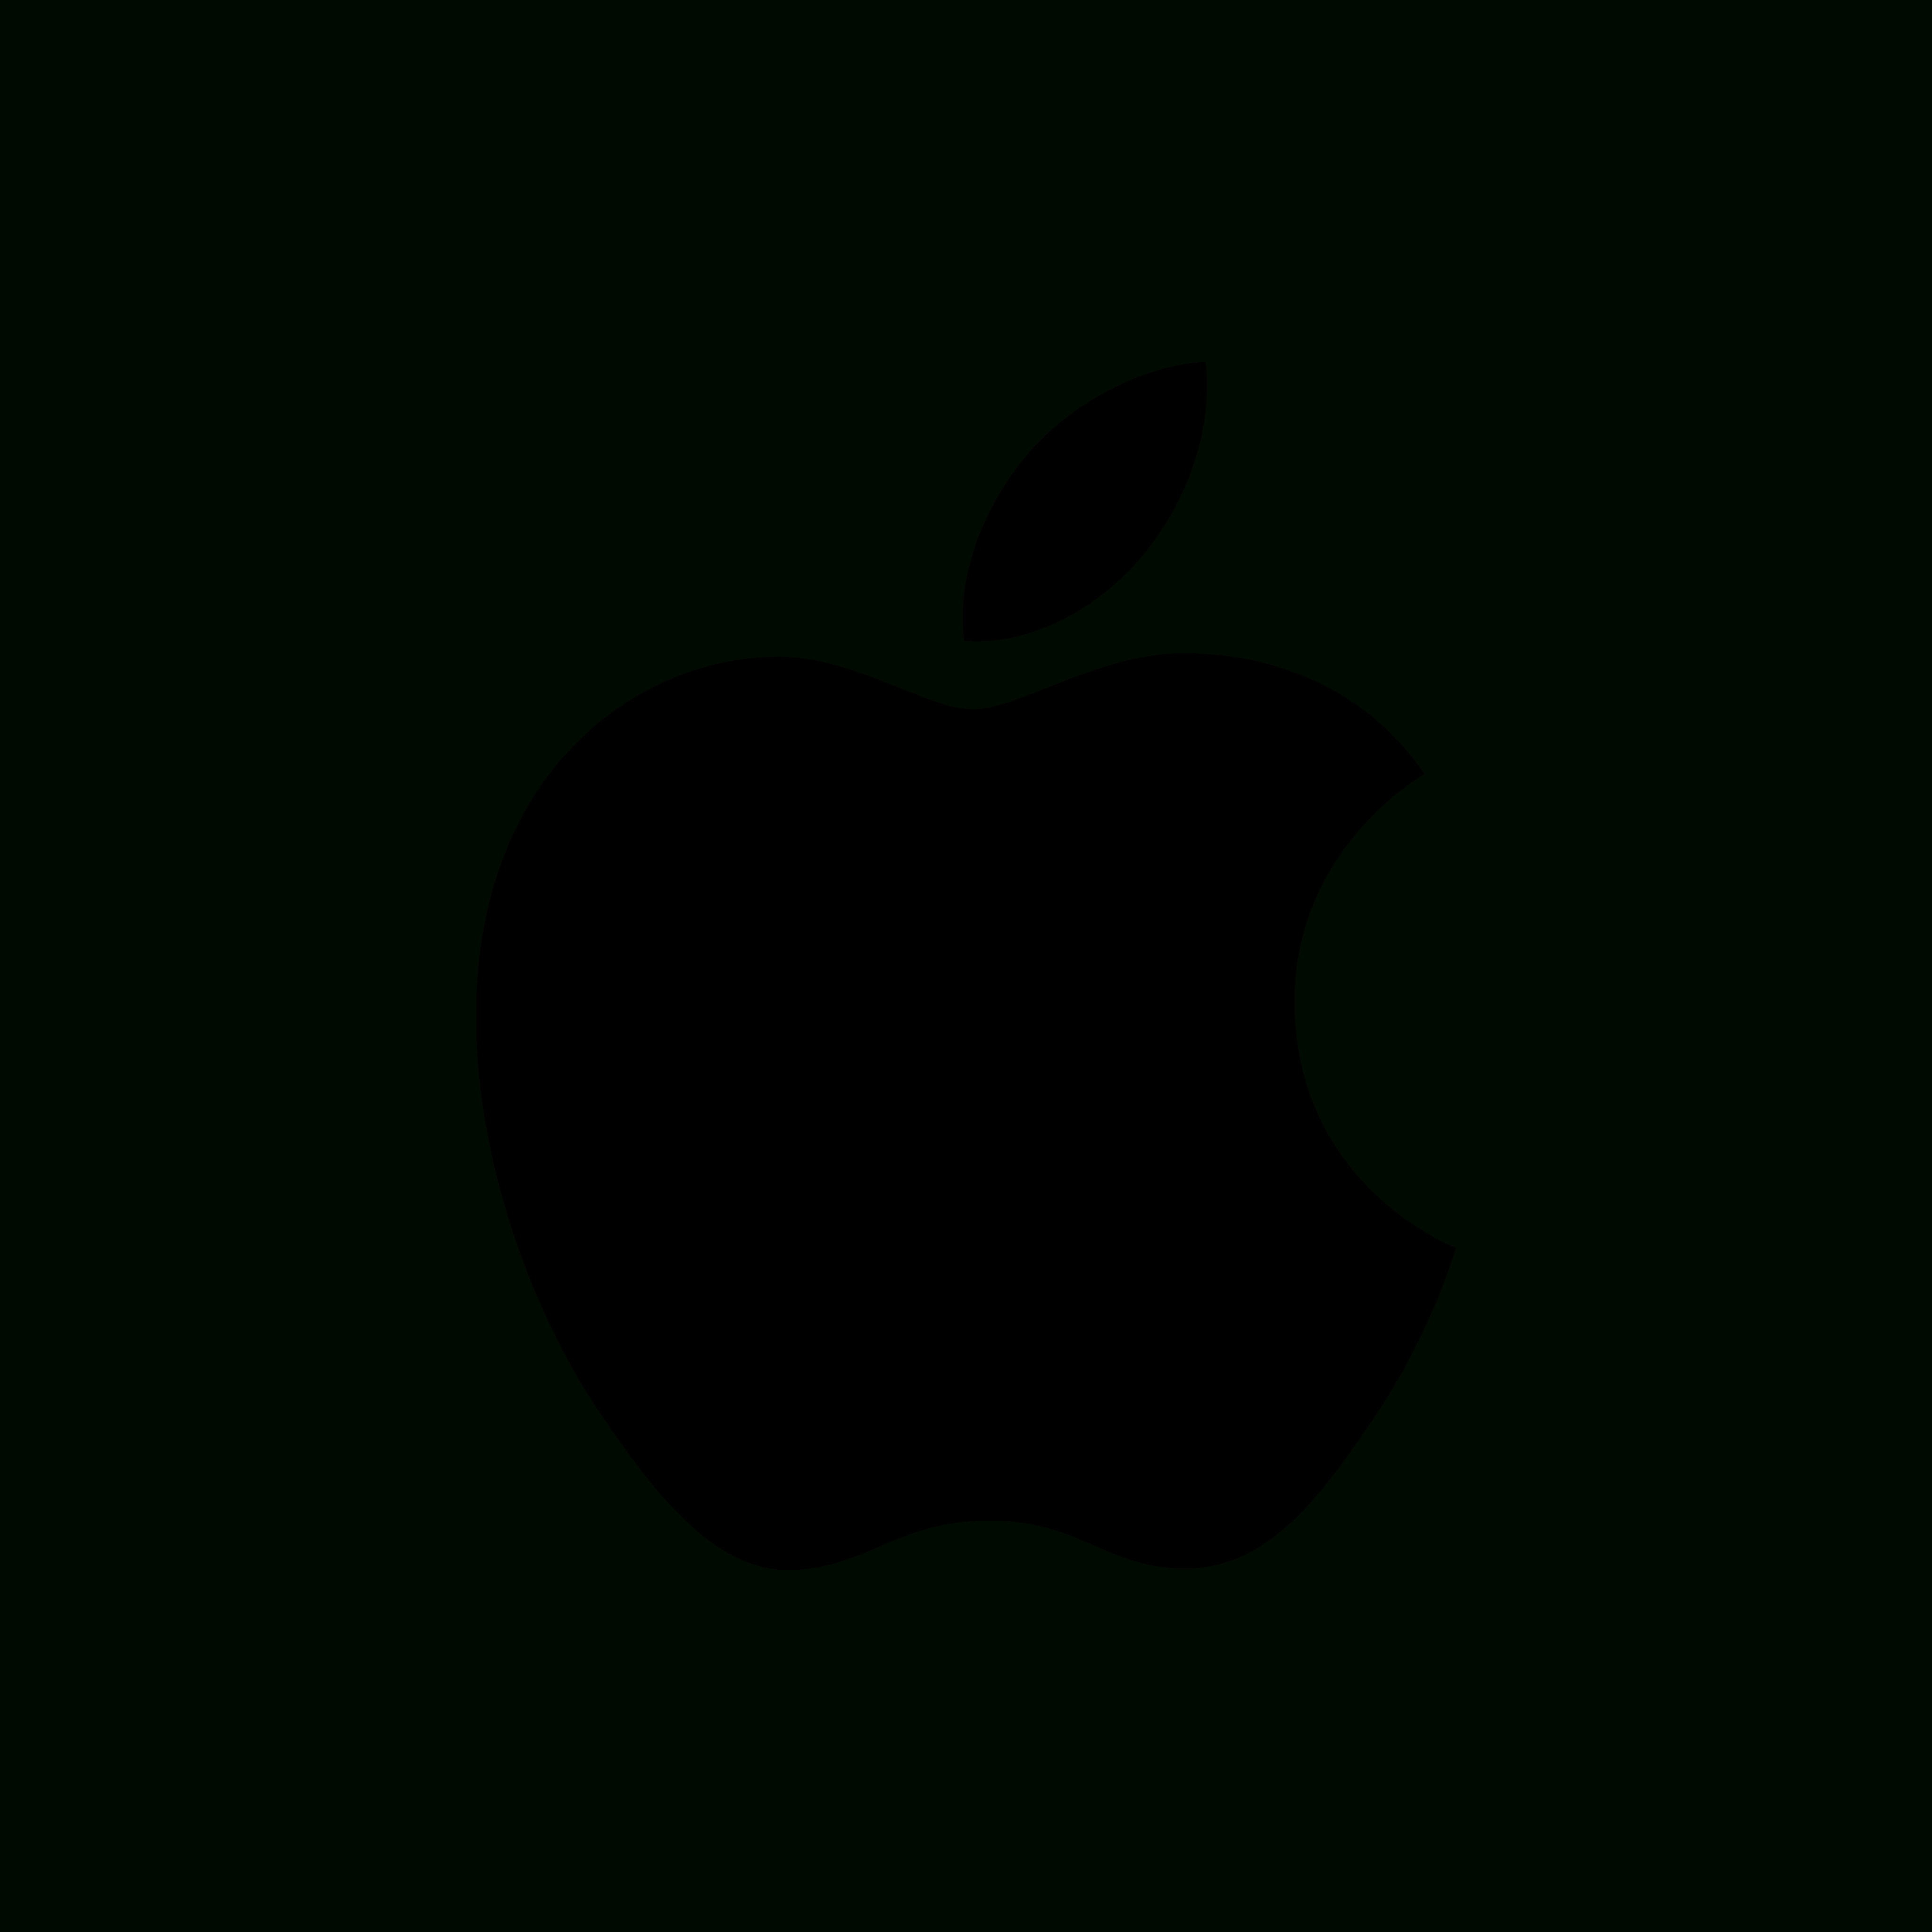 free icon apple logo #14895 - free icons and png backgrounds